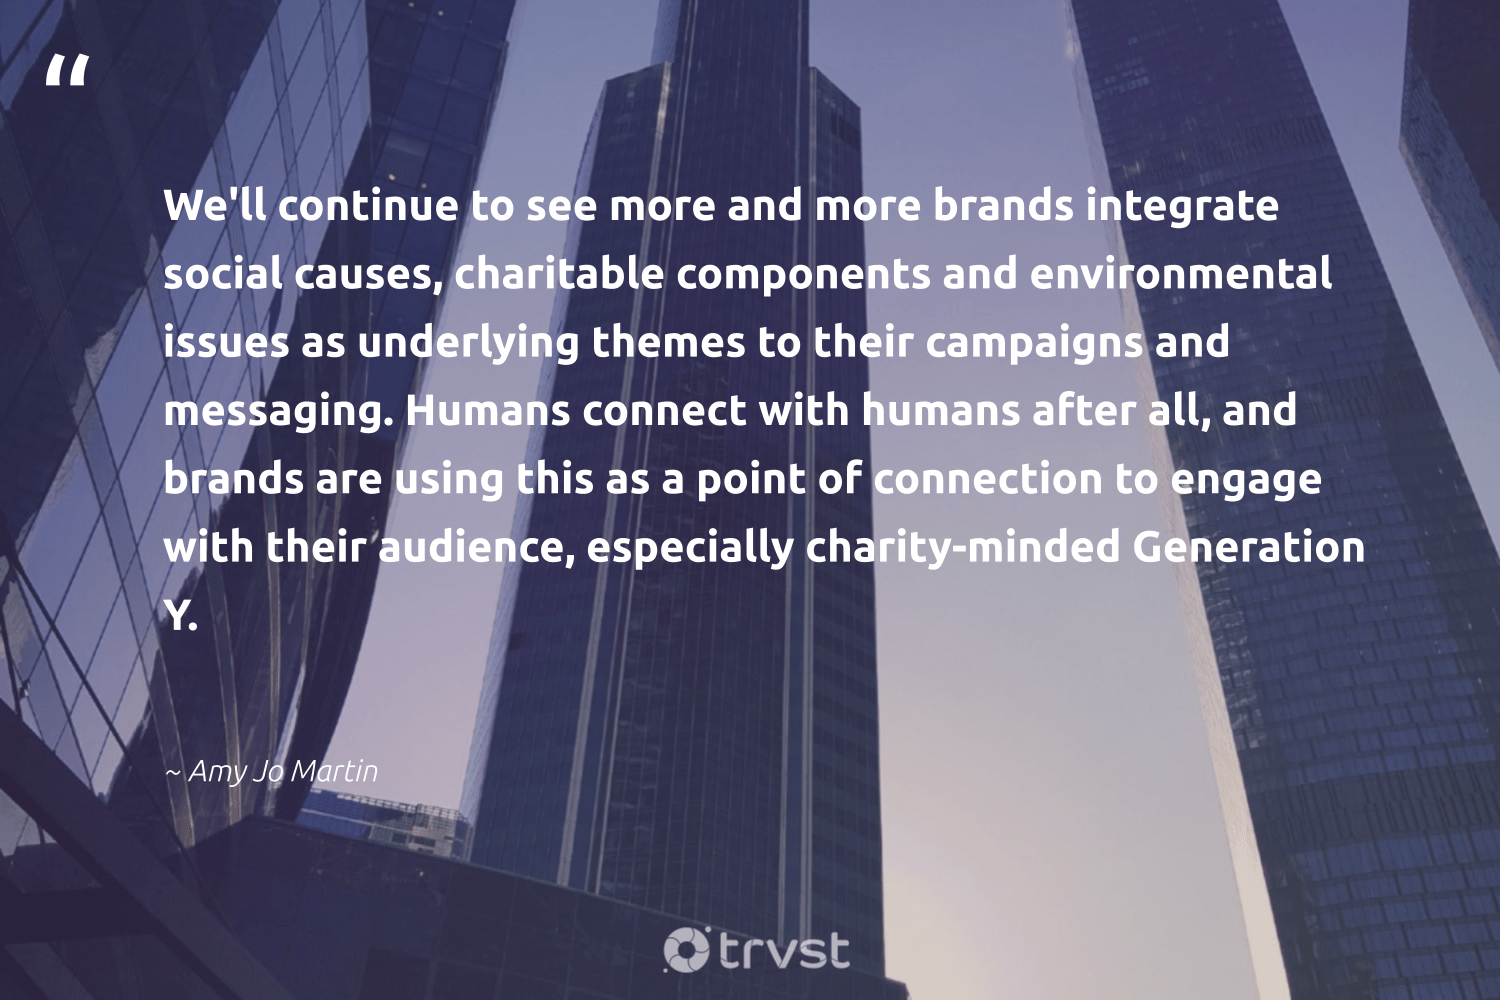 """""""We'll continue to see more and more brands integrate social causes, charitable components and environmental issues as underlying themes to their campaigns and messaging. Humans connect with humans after all, and brands are using this as a point of connection to engage with their audience, especially charity-minded Generation Y.""""  - Amy Jo Martin #trvst #quotes #environmental #causes #Charity #giveback #betterplanet #dogood #humanitarian #sustainable #communities #bethechange"""